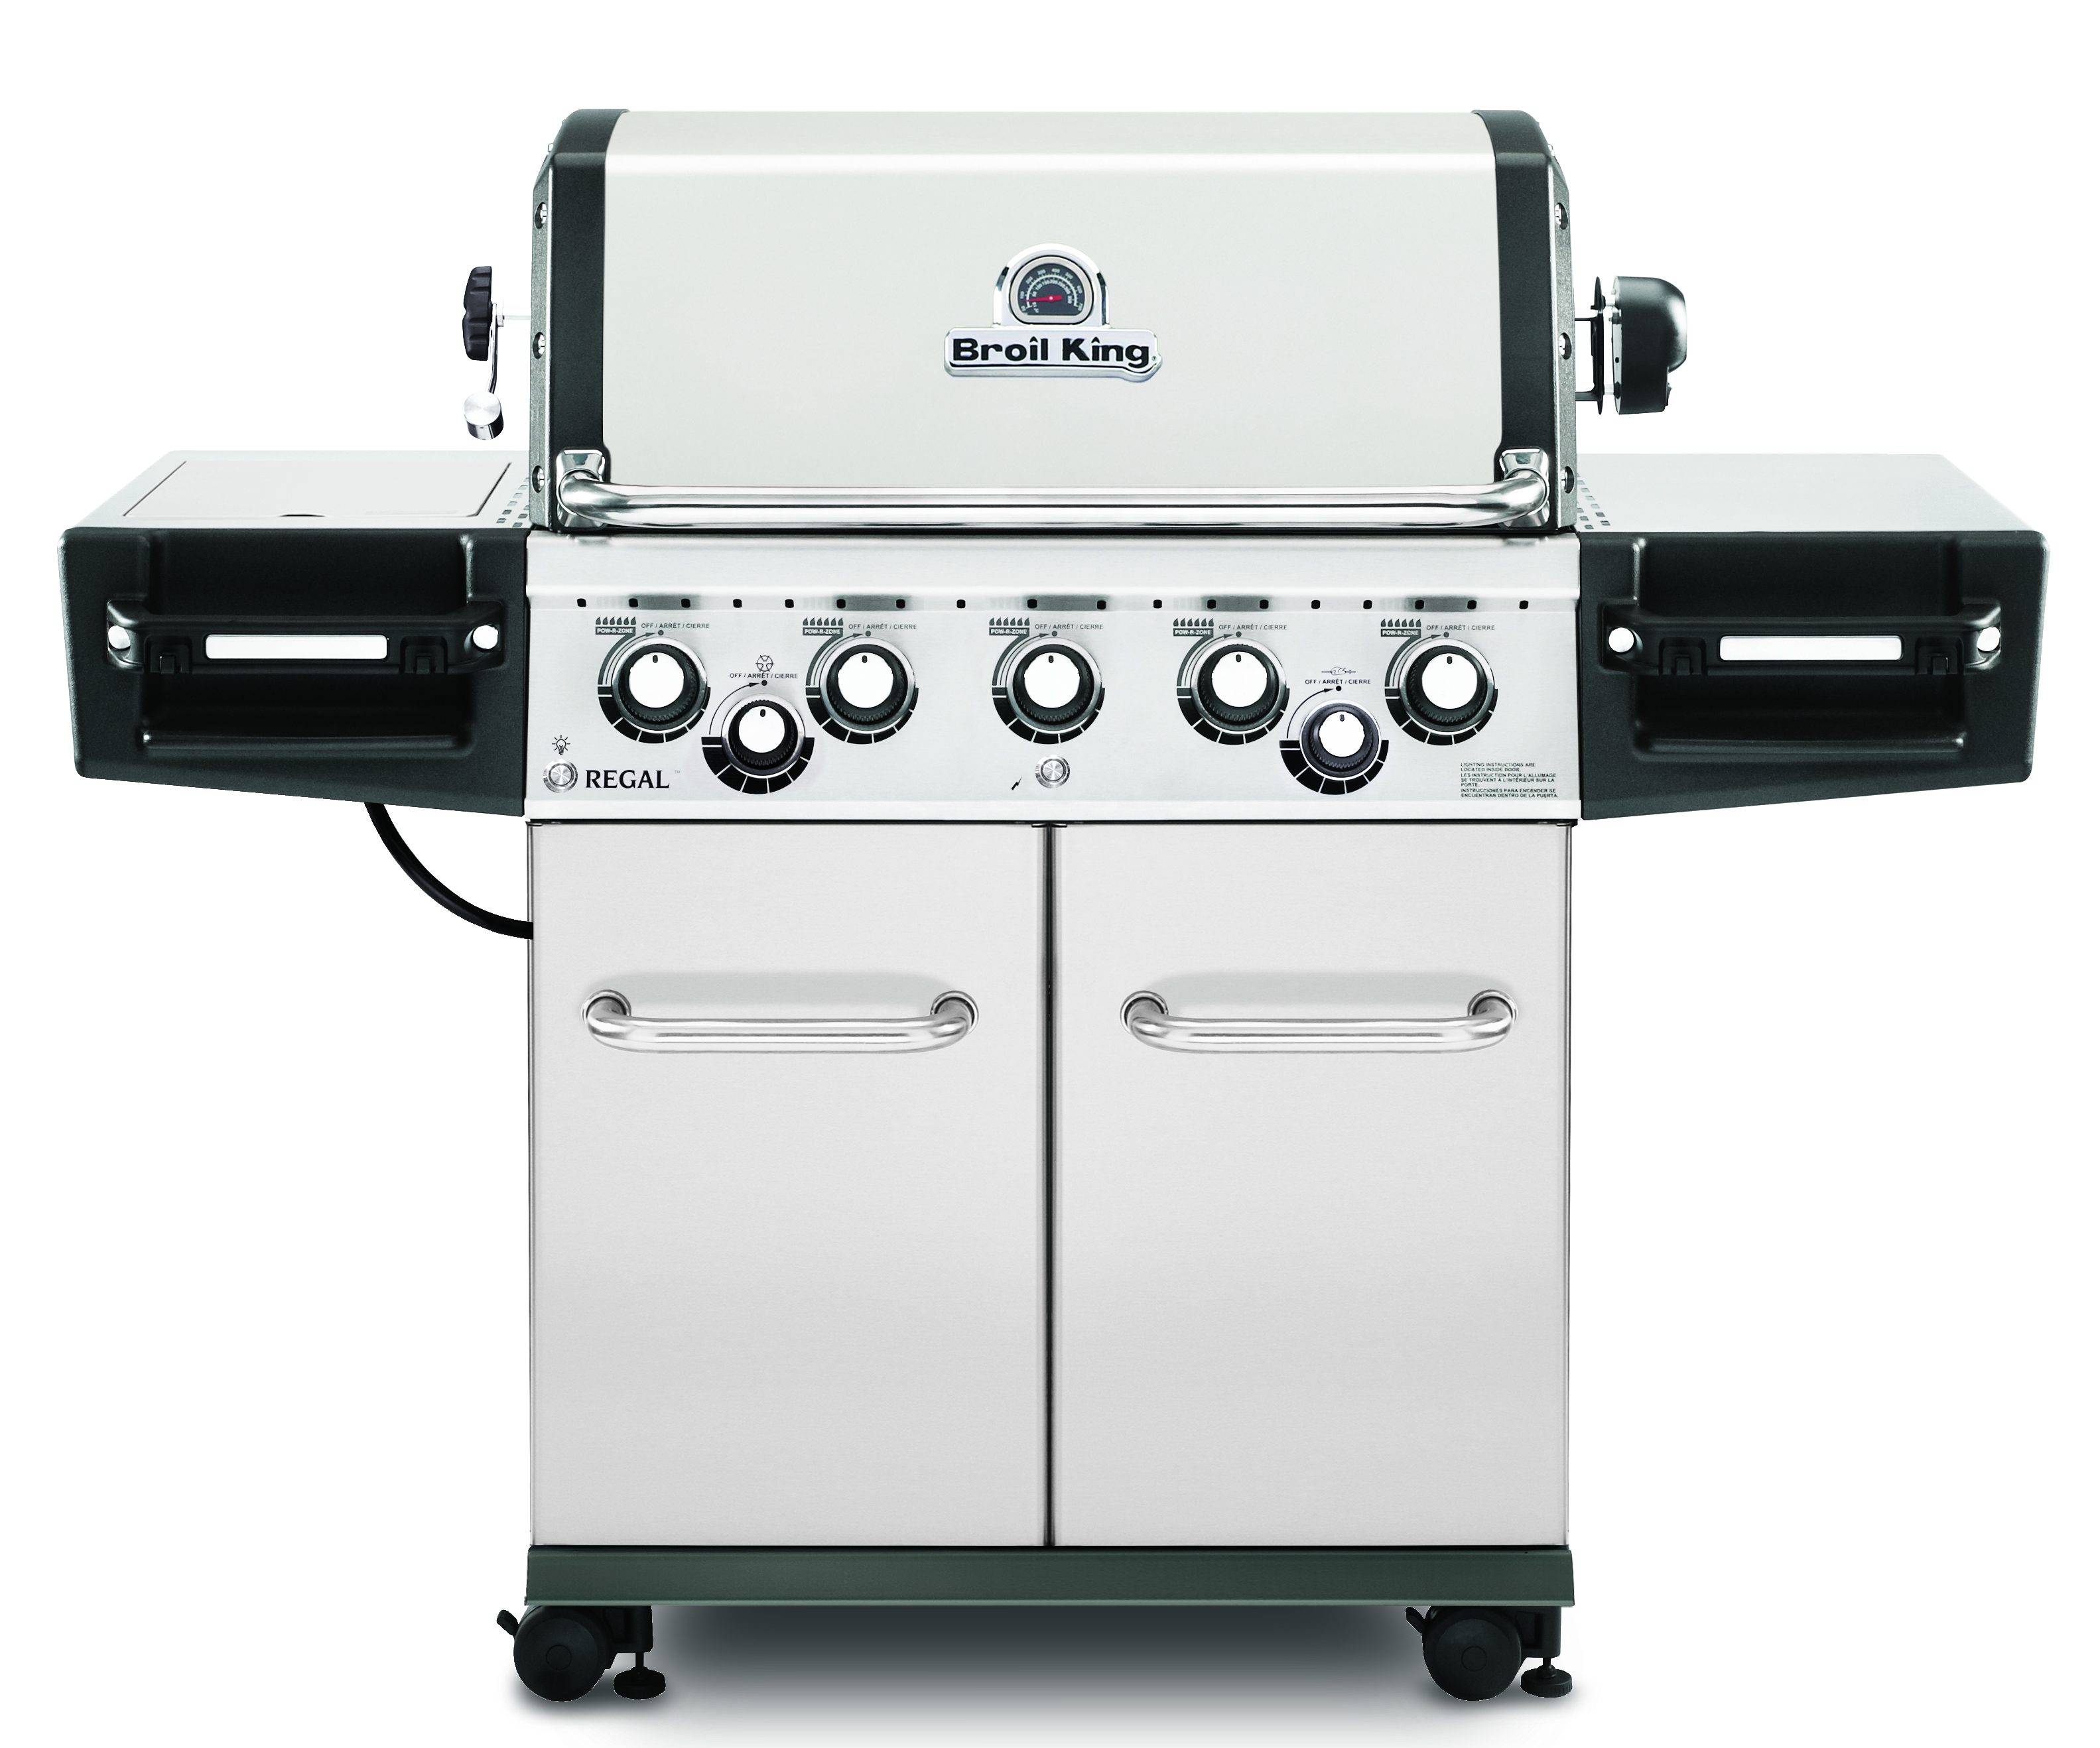 Broil King Regal S590 IR